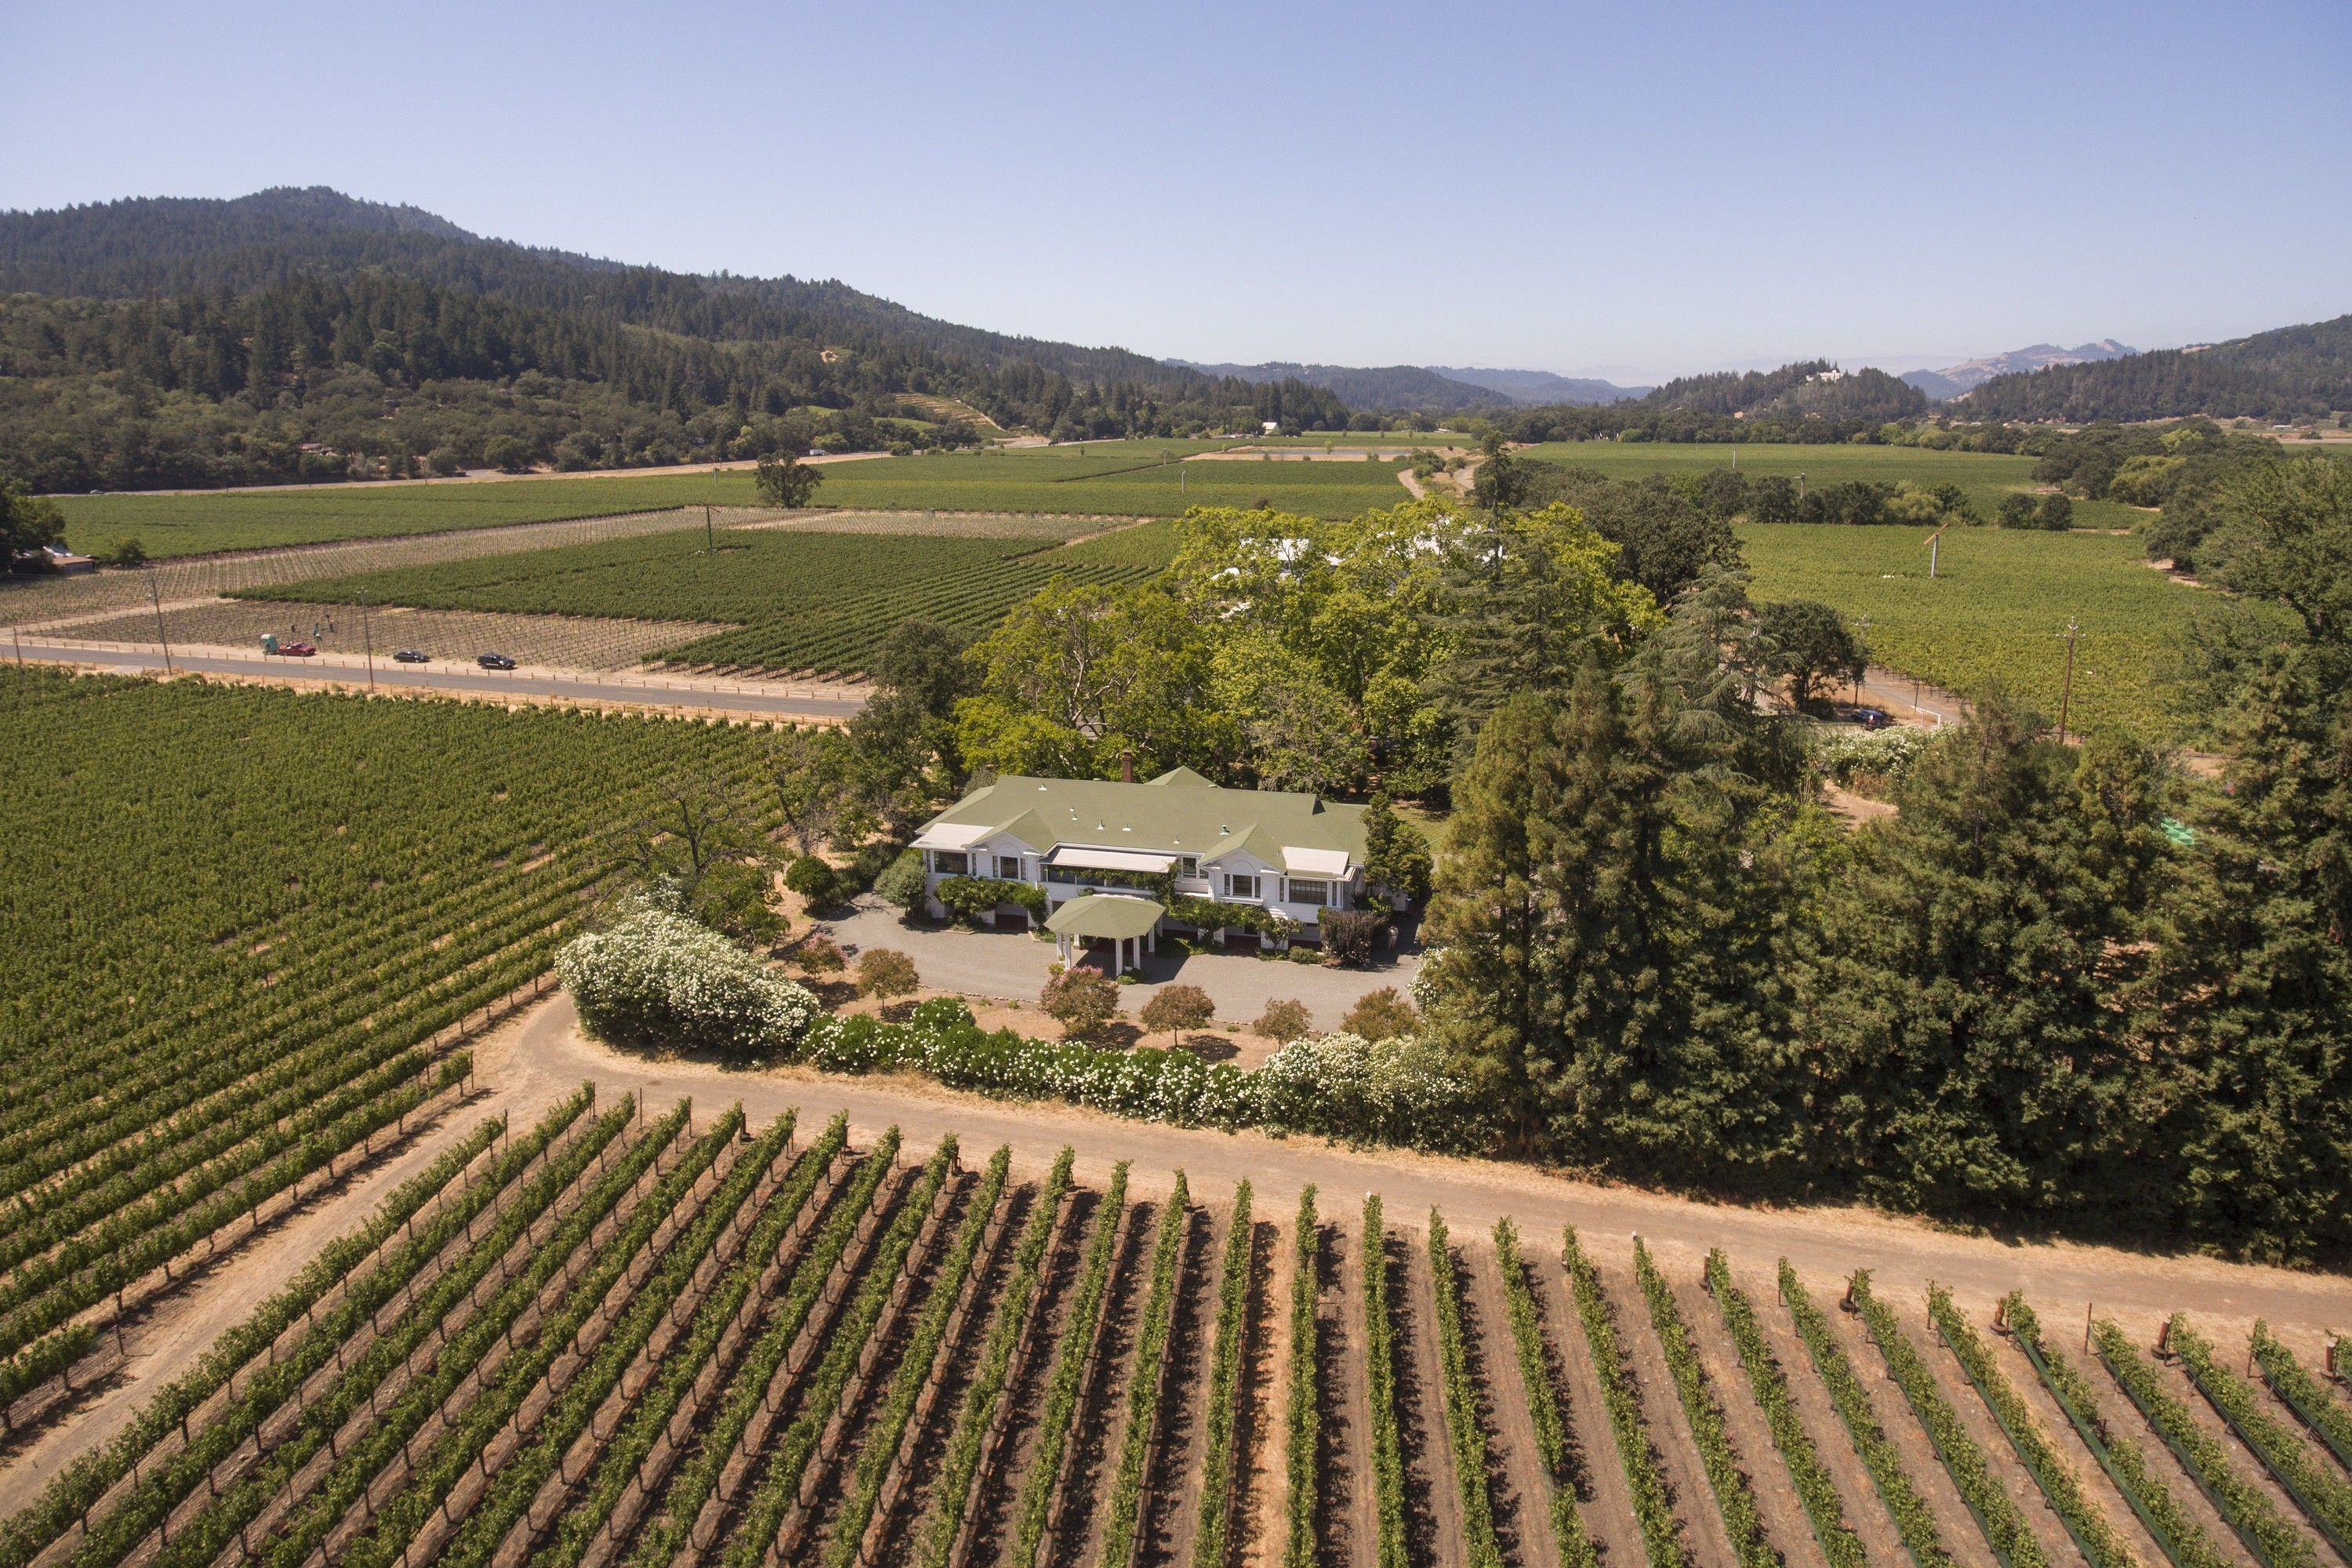 Single Family Home for Sale at Larkmead Inn in the Vineyards 1103 Larkmead Lane Calistoga, California 94515 United States